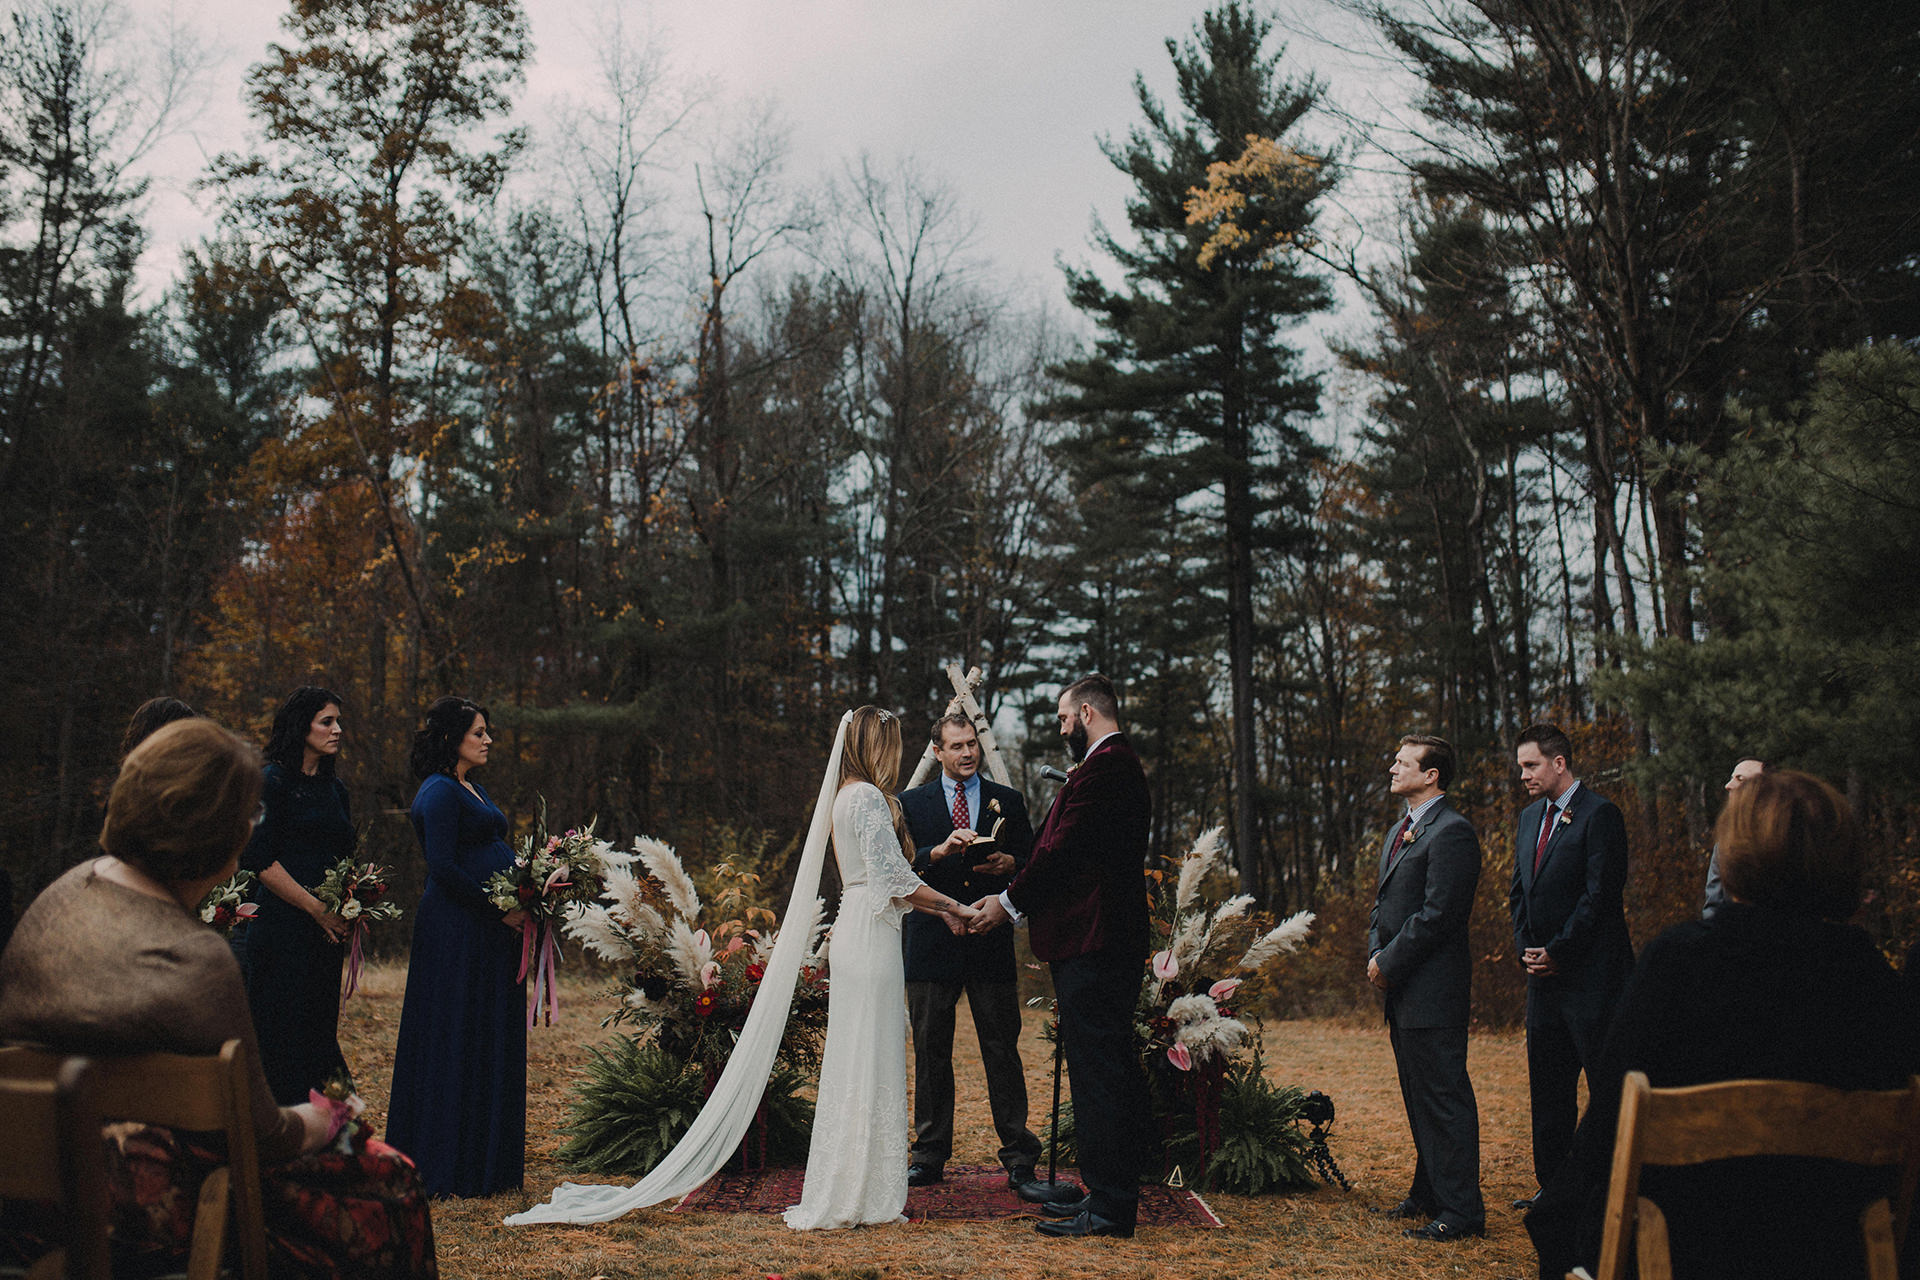 Weddind_catskills_mountain_newyjersey-188.jpg